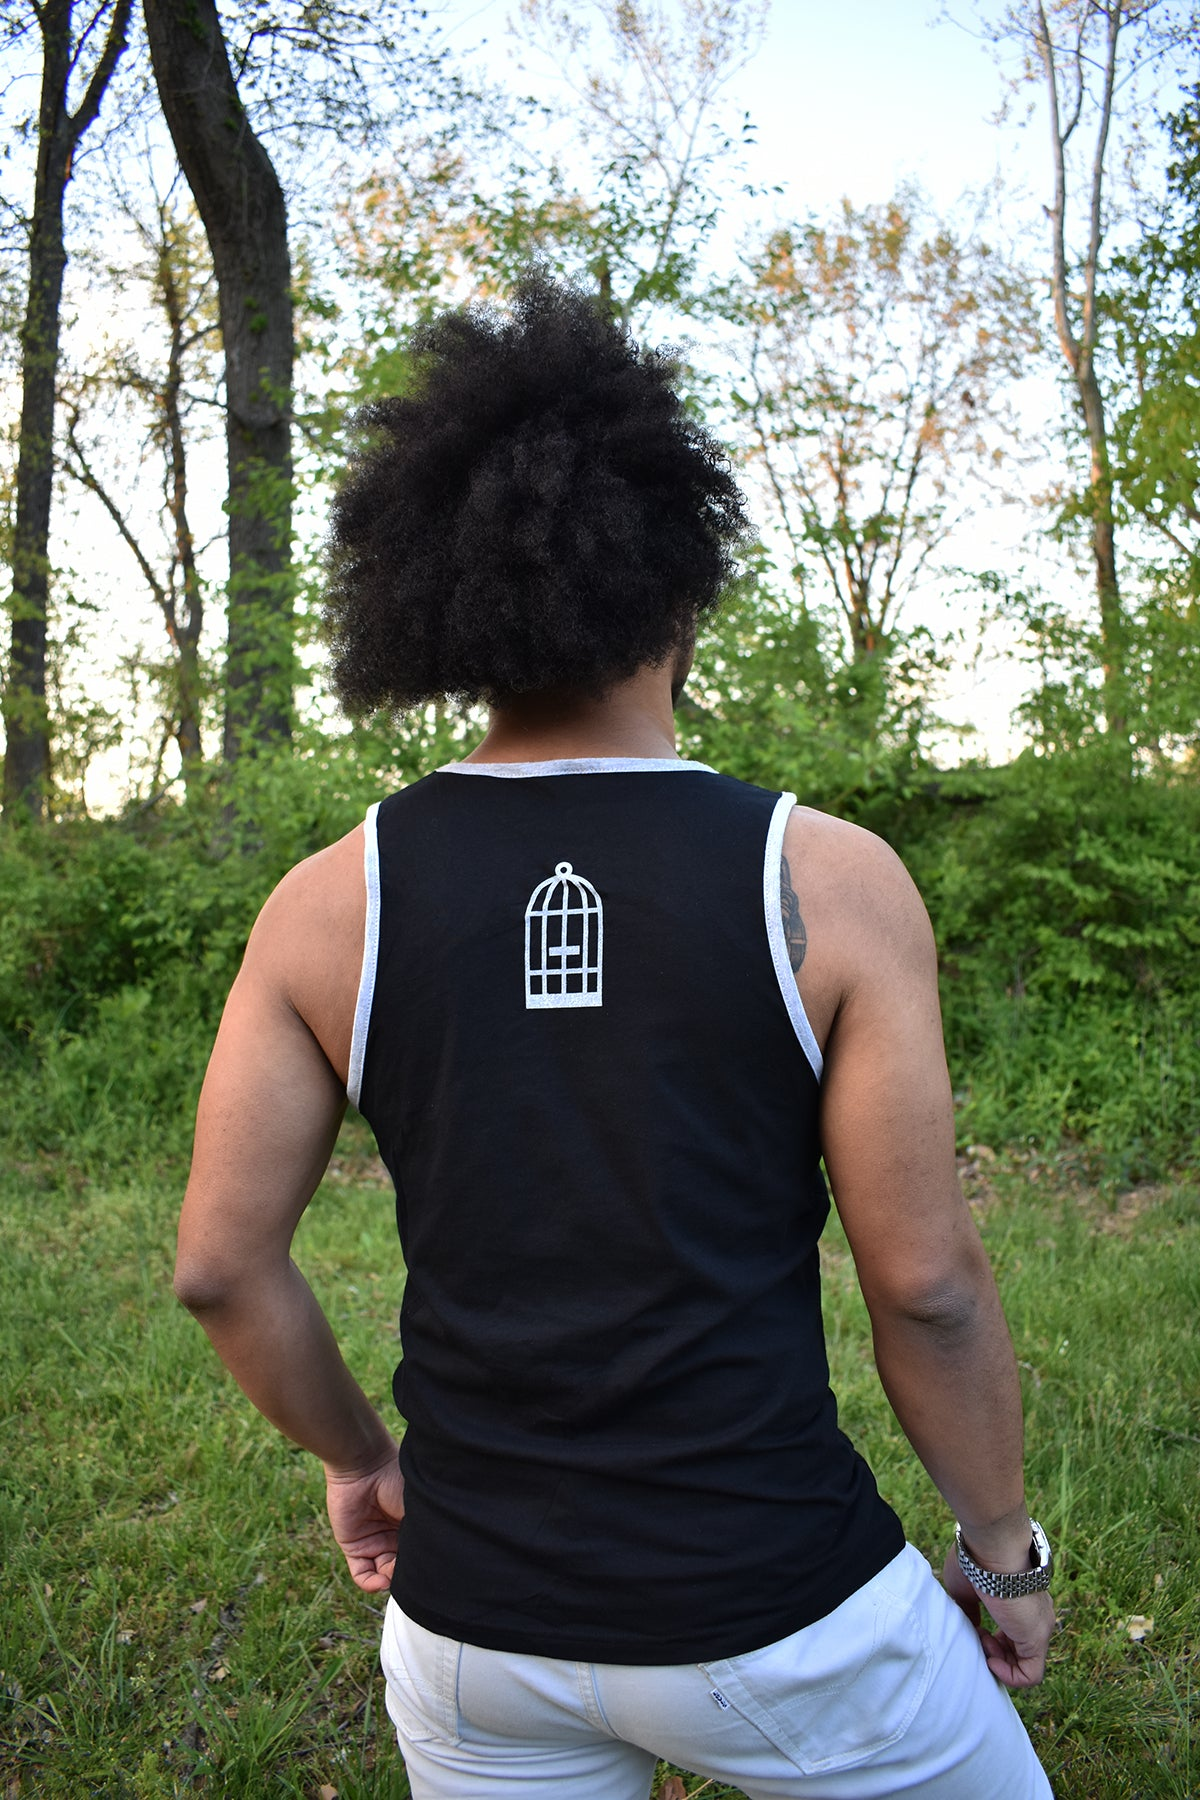 Male model wearing a black and grey ringer tank top with a small No Egret's birdcage logo in grey on the back between the shoulders.